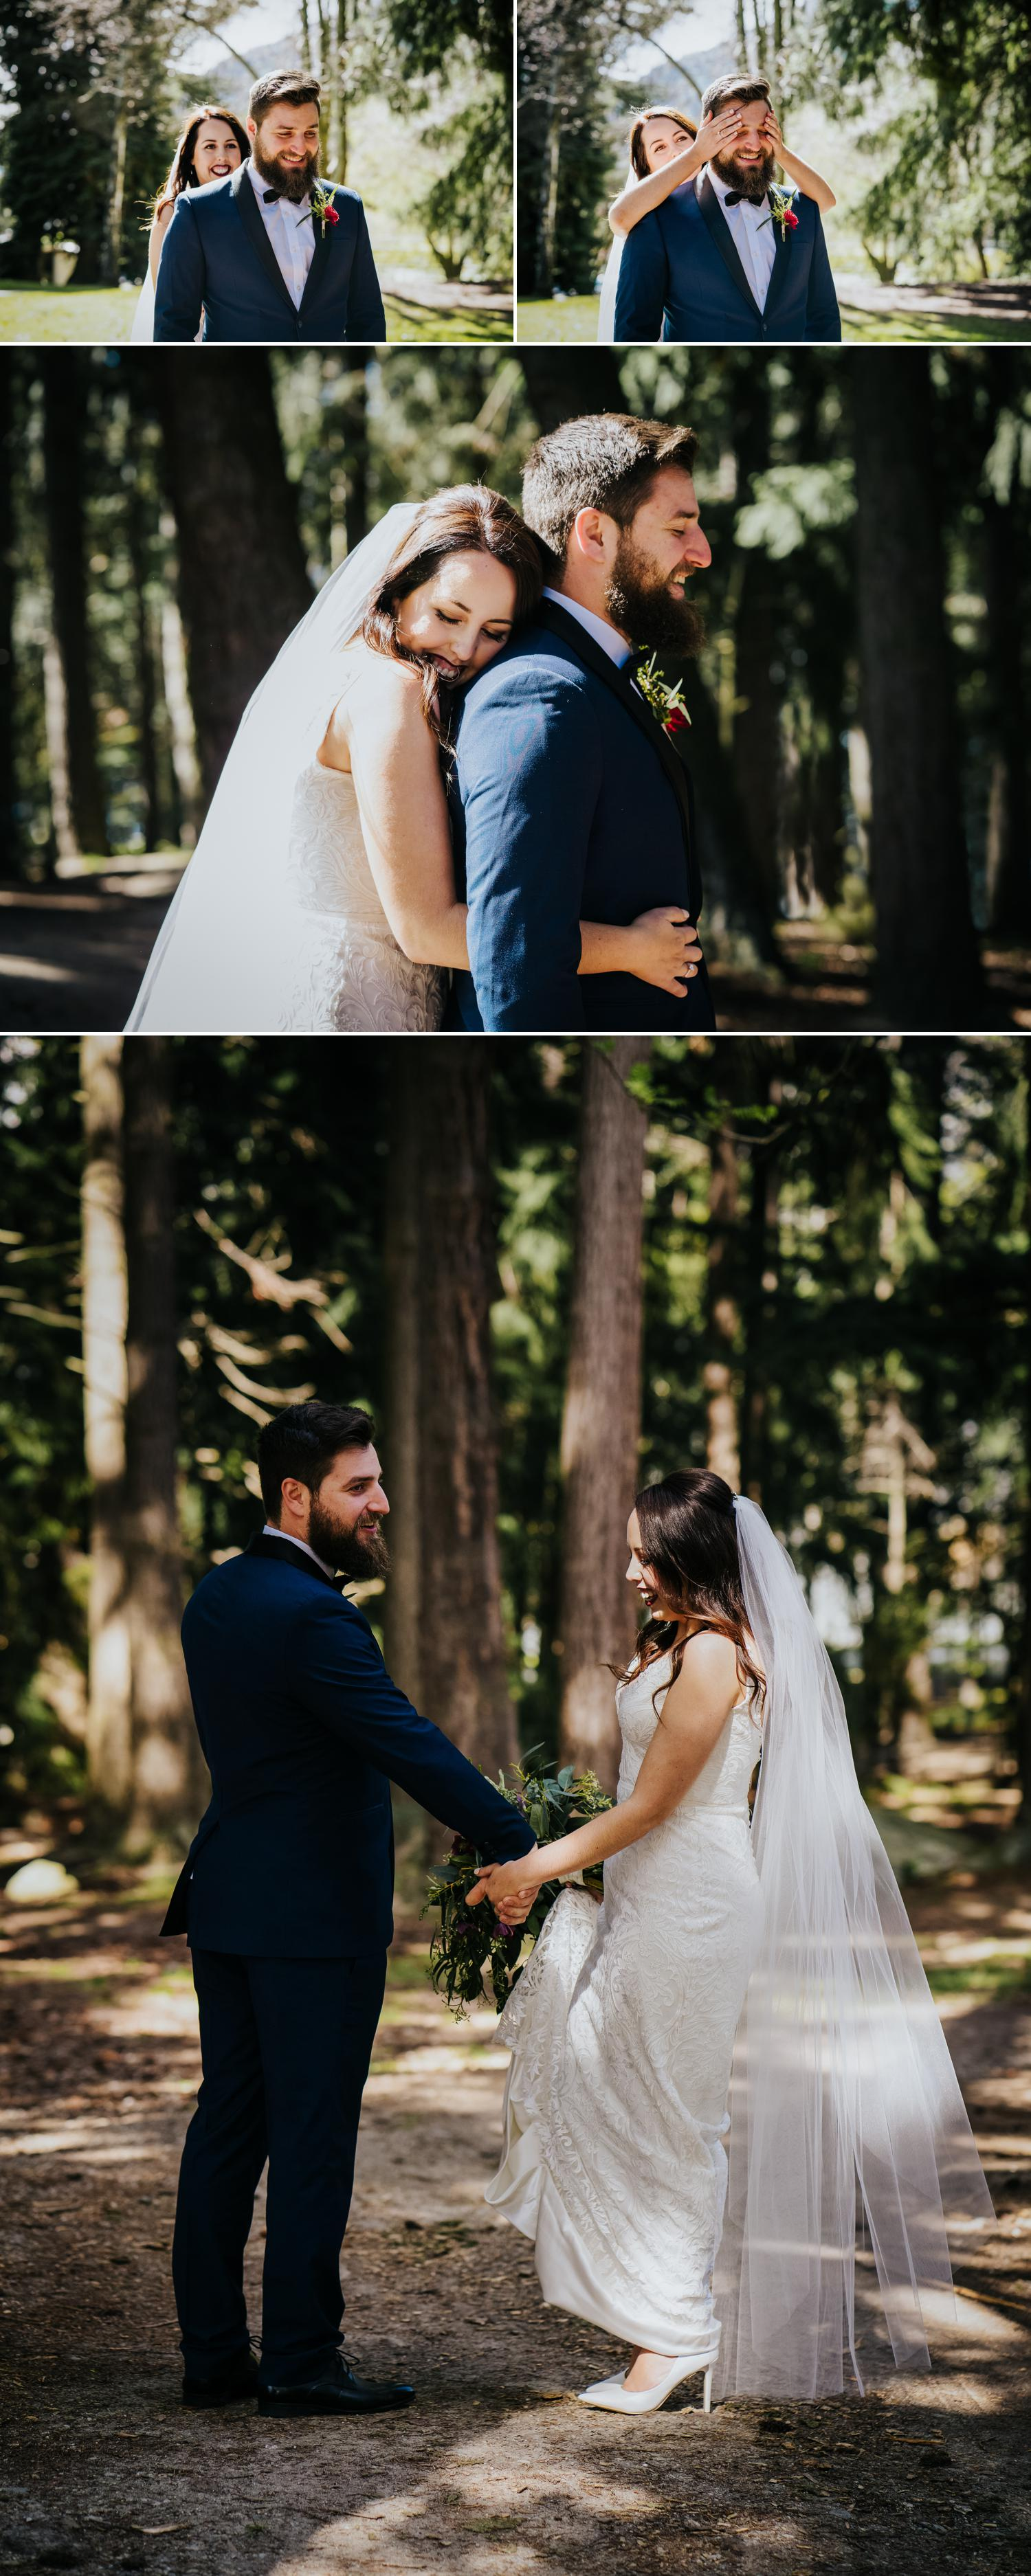 Queenstown gardens wedding photography